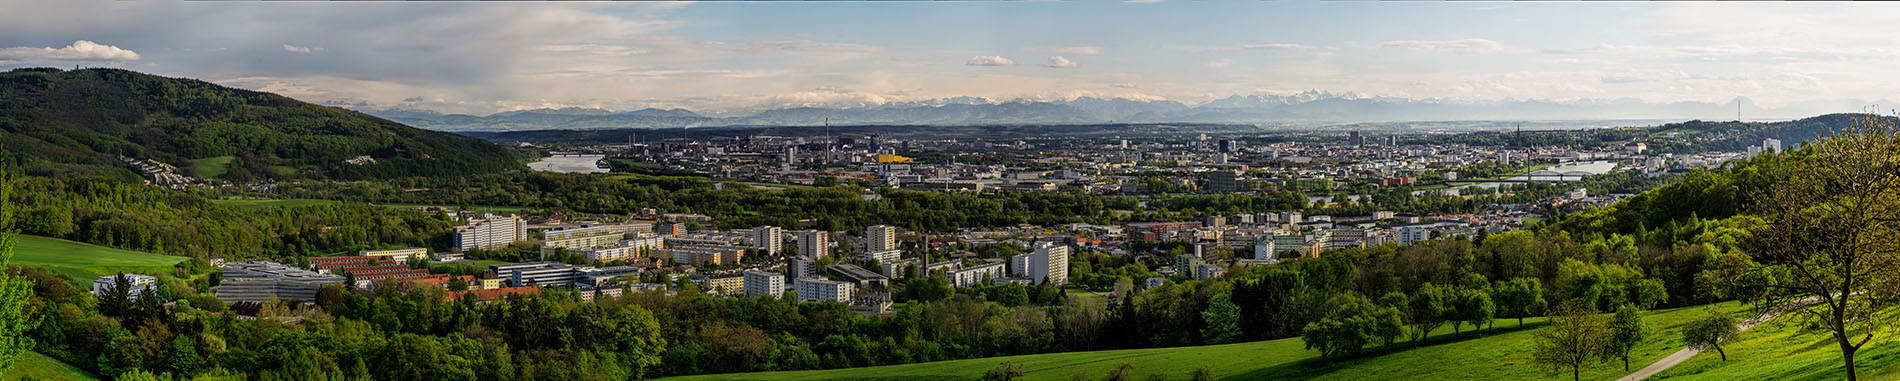 Peter Pauer Photo Linz Panorama VOEST peter-pauer-photo Panoramafoto Österreich Austria Best off